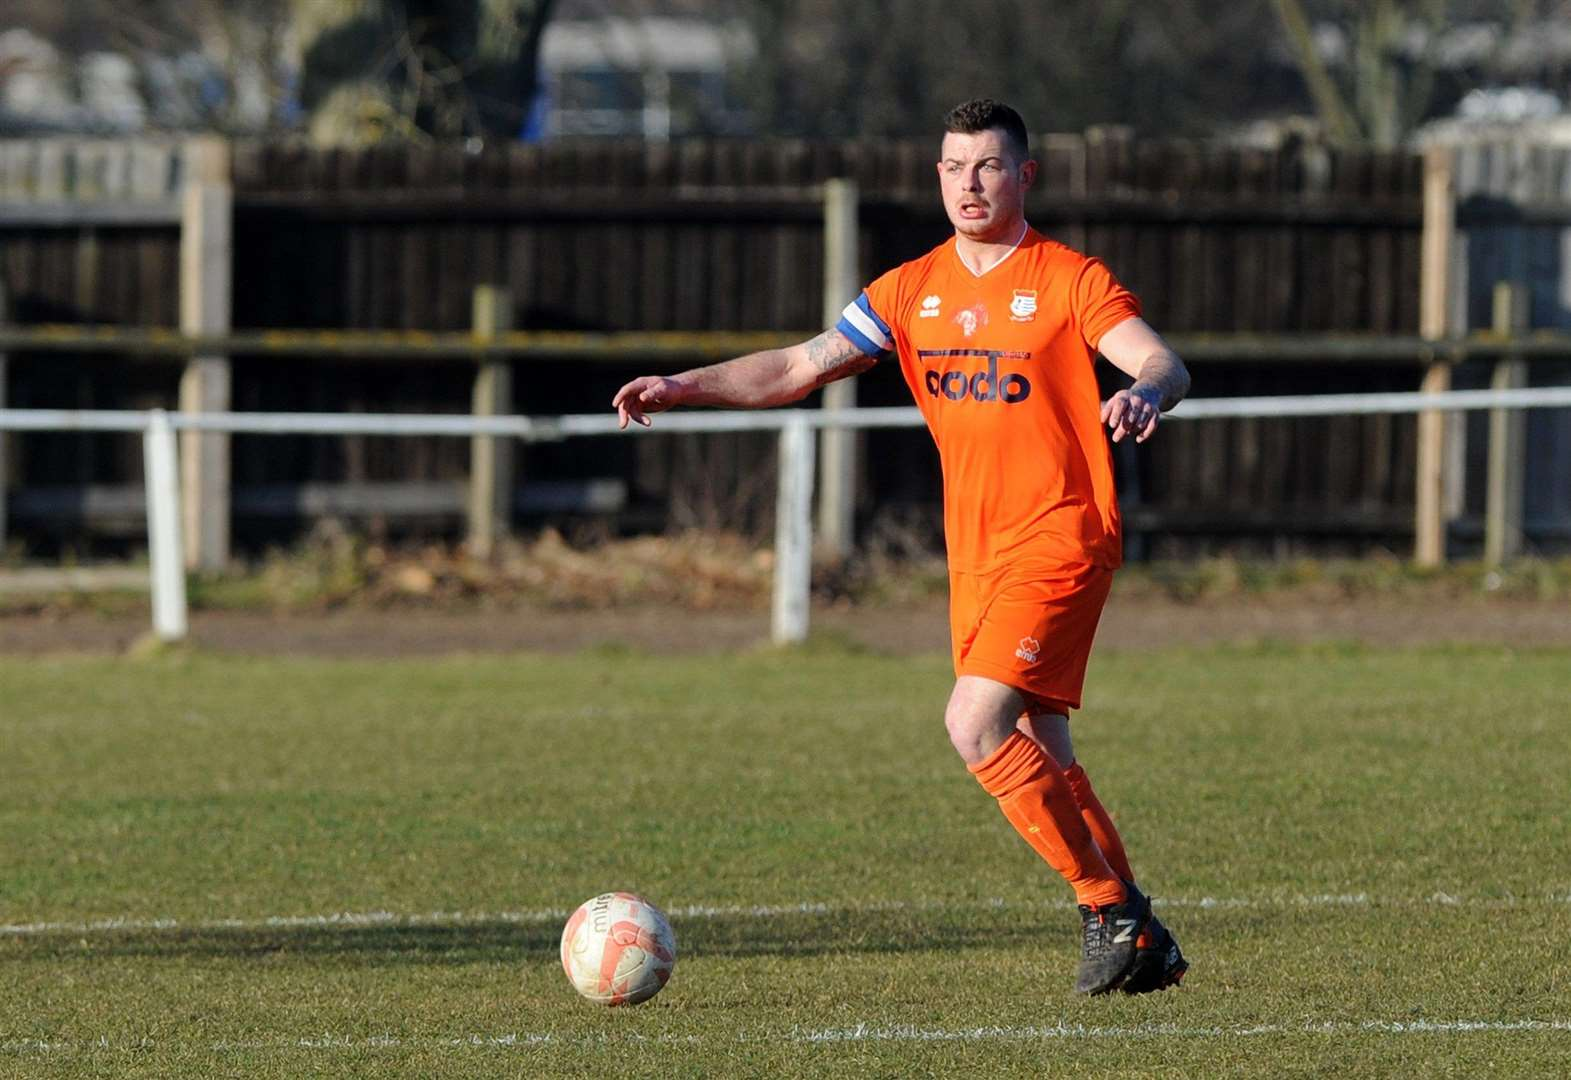 Skipper departs Diss with manager's best wishes